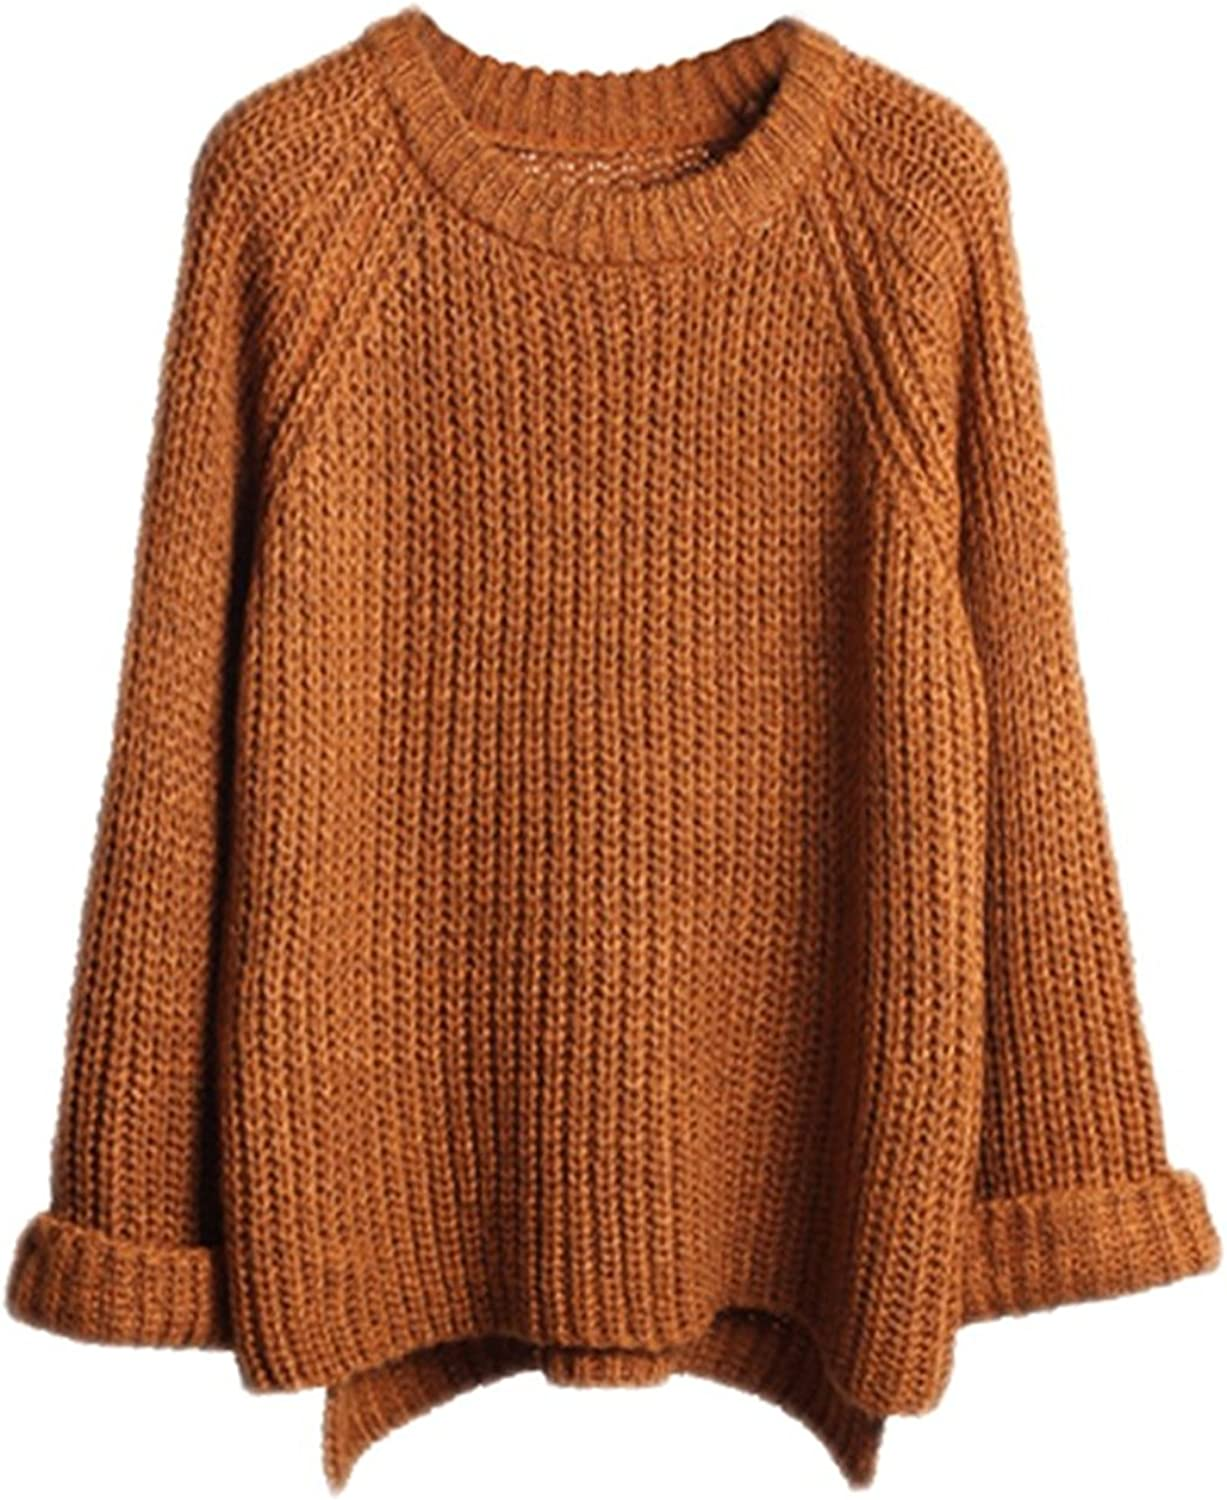 Lisli Women's Batwing Sleeve Loose Oversized Pullover Knitted Sweater